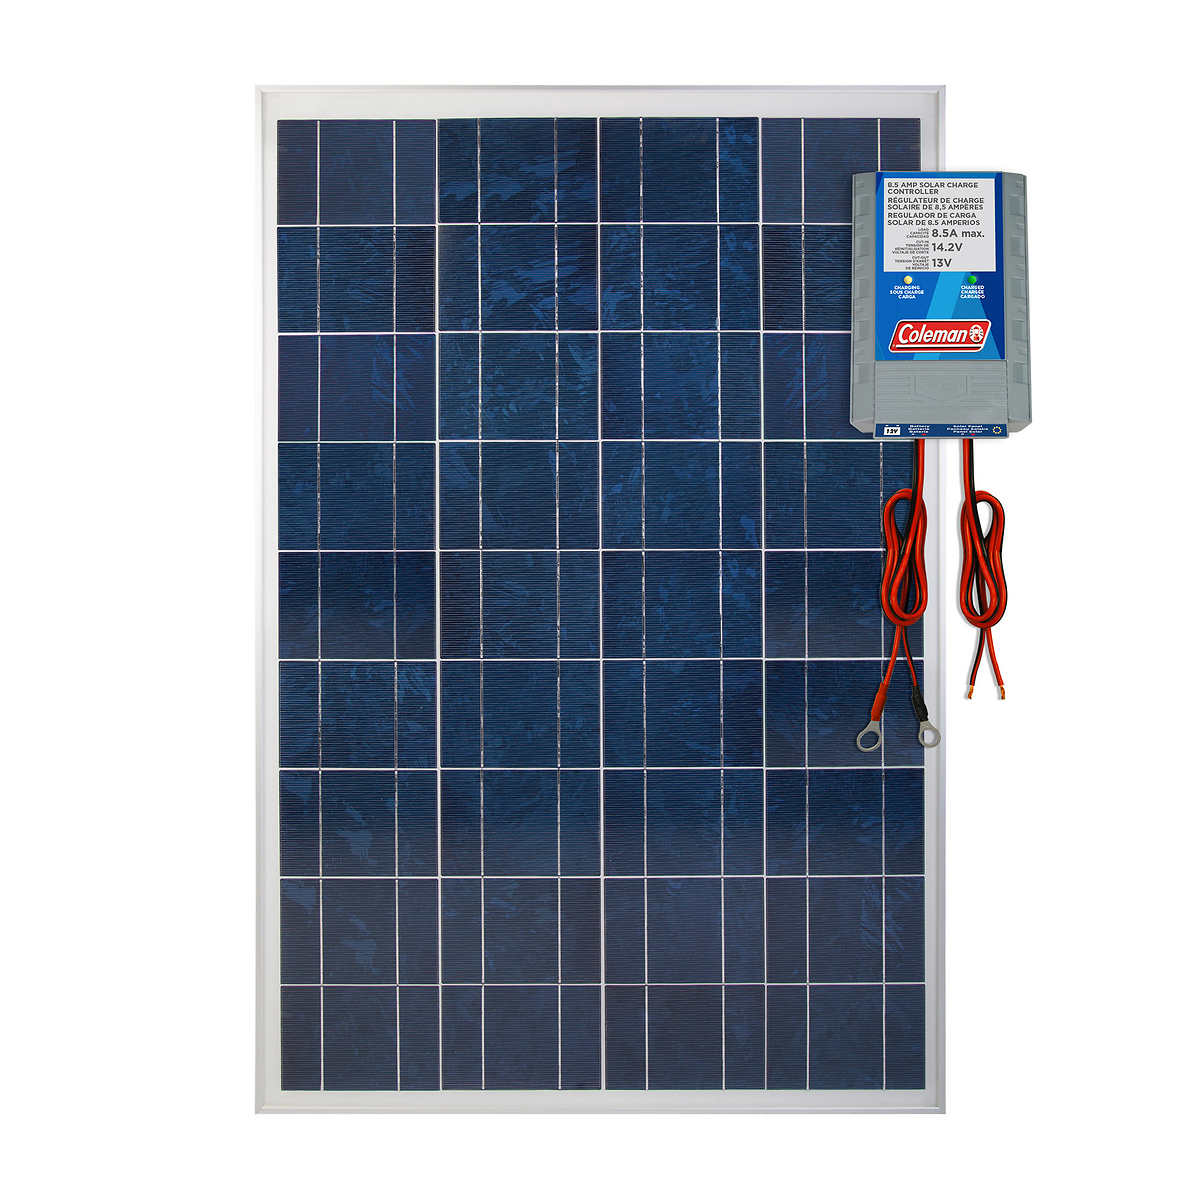 Walmart Cm: Coleman 100W Solar Panel With 8.5 AMP Charge Controller